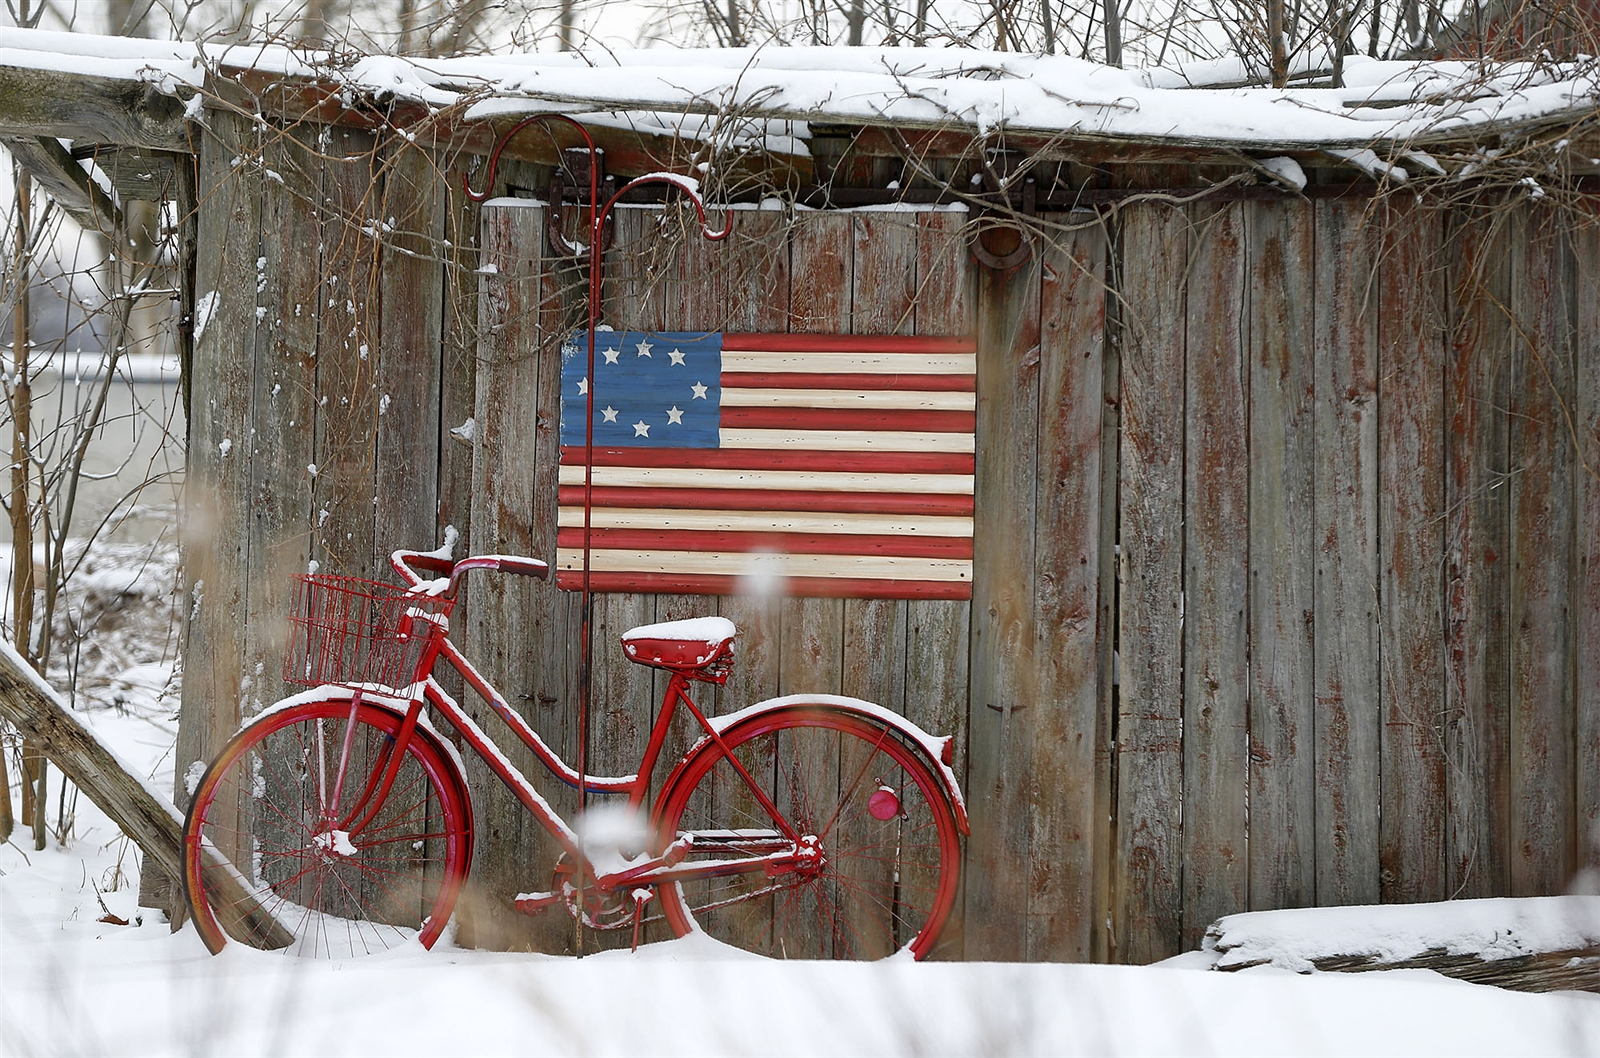 Day 73: March 17, 2018 - A red bicycle and an American flag add color to a wintry backdrop of a weather-beaten wooden fence on Lockport Road in the Town of Niagara.